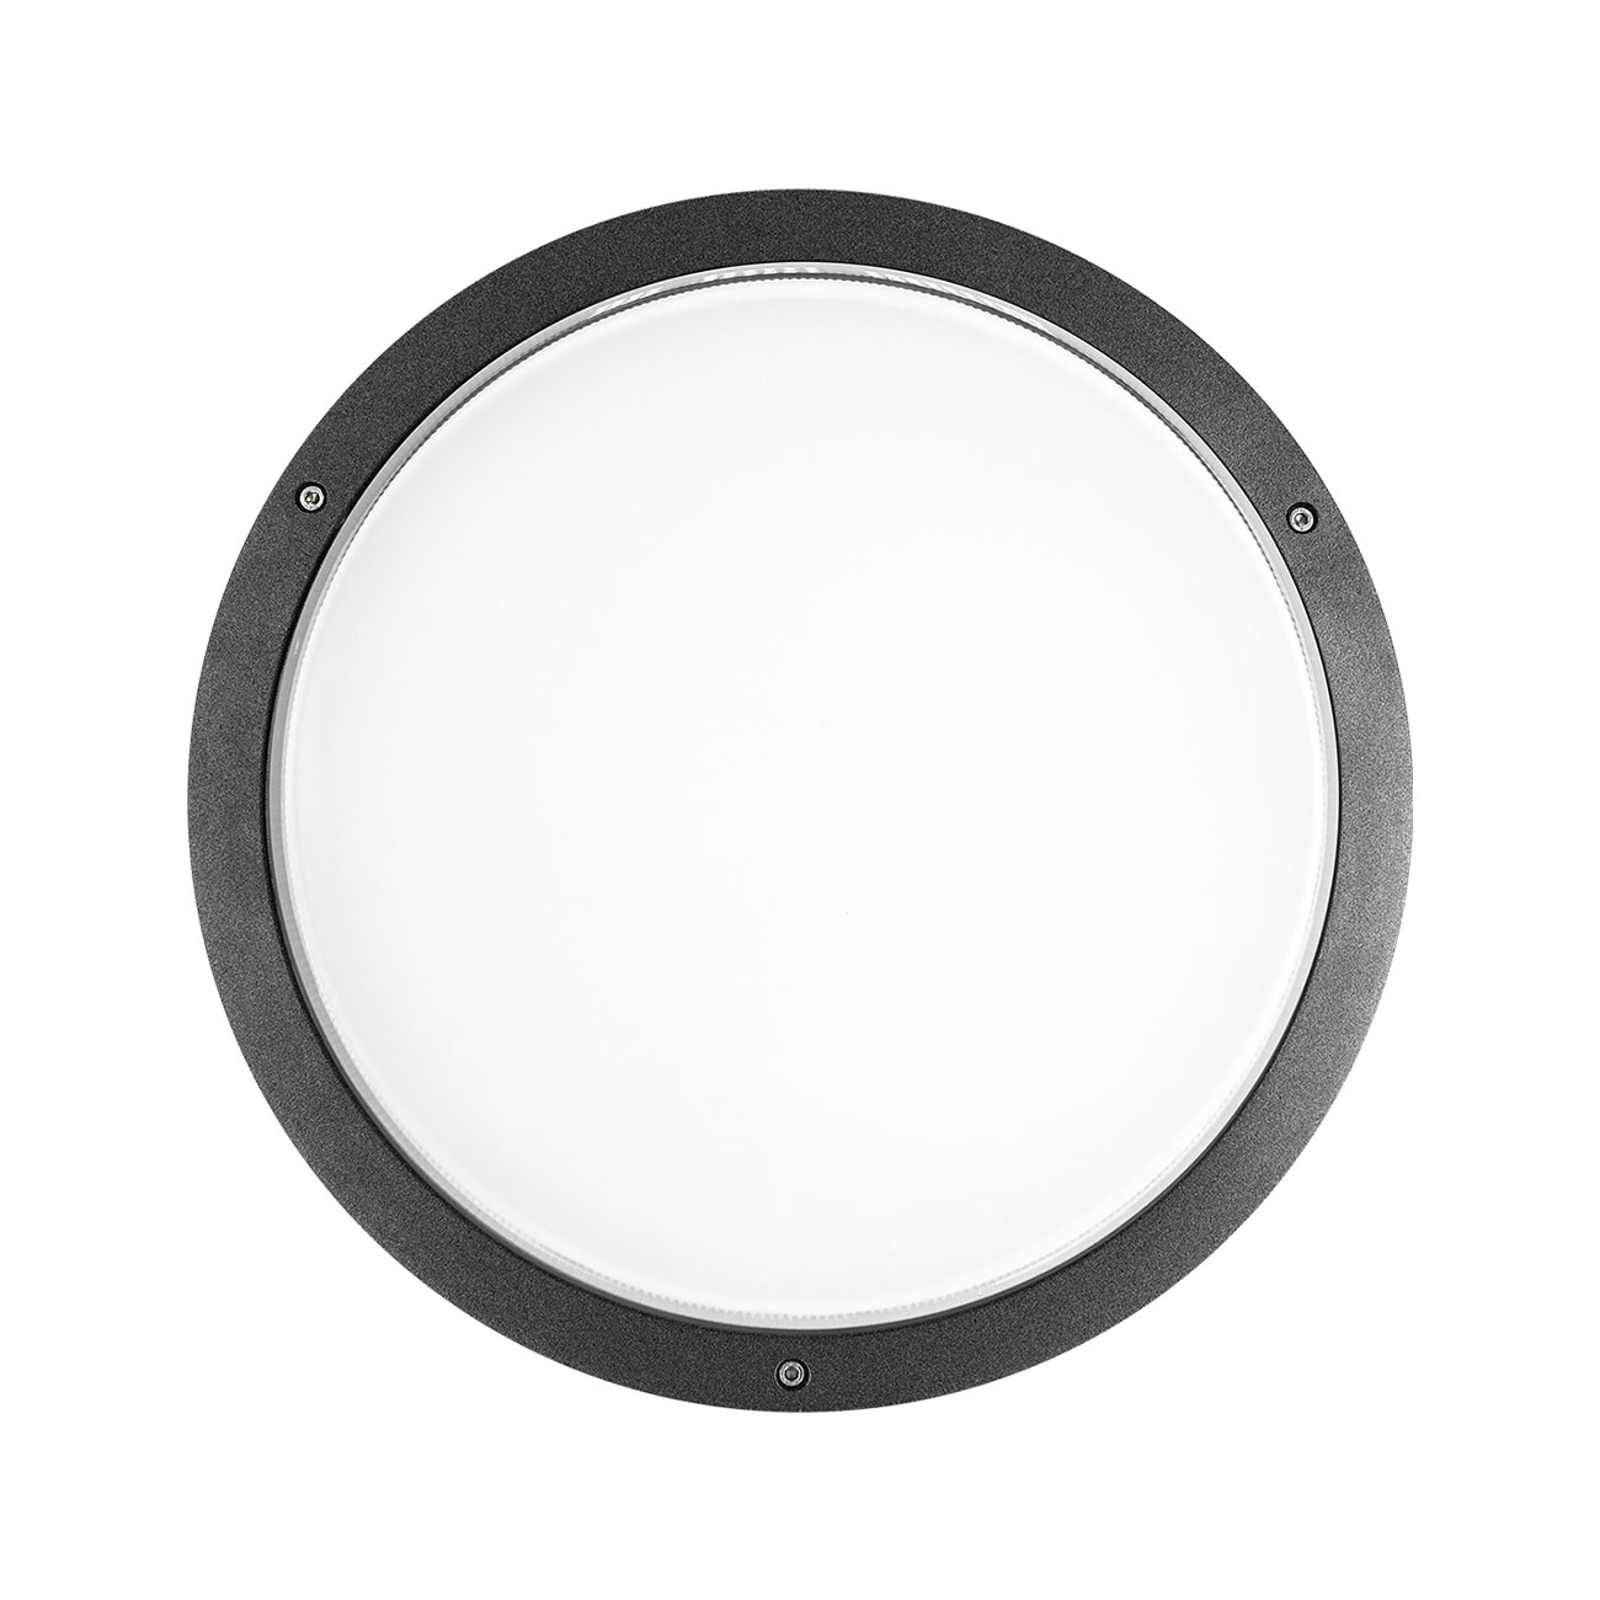 Applique Bliz Round 40 3 000 K anthracite dimmable